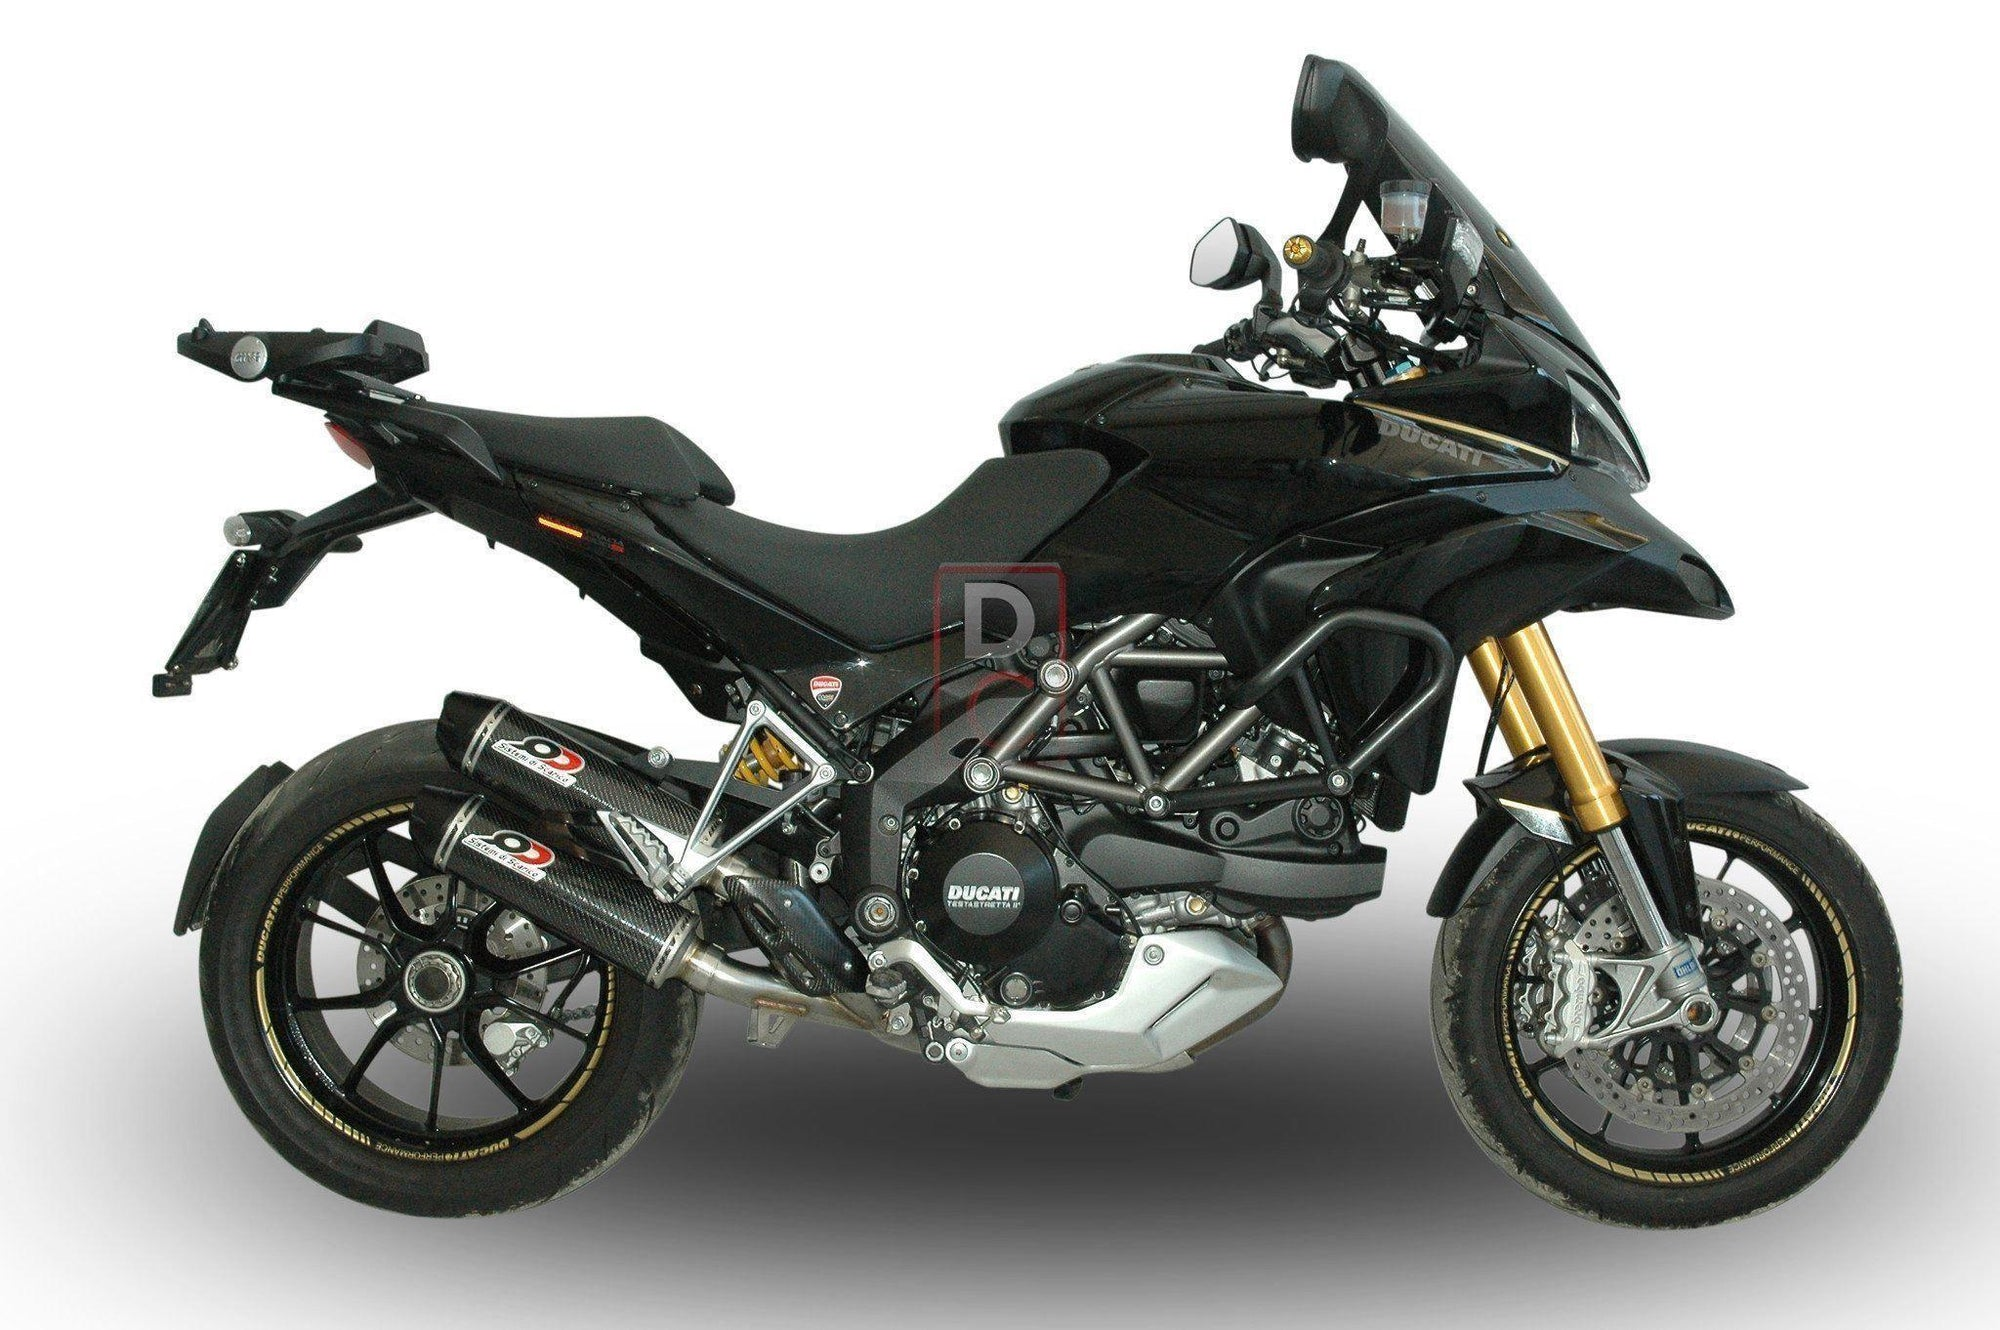 Ducati Multistrada 1200 '14 QD Exhausts Quat D